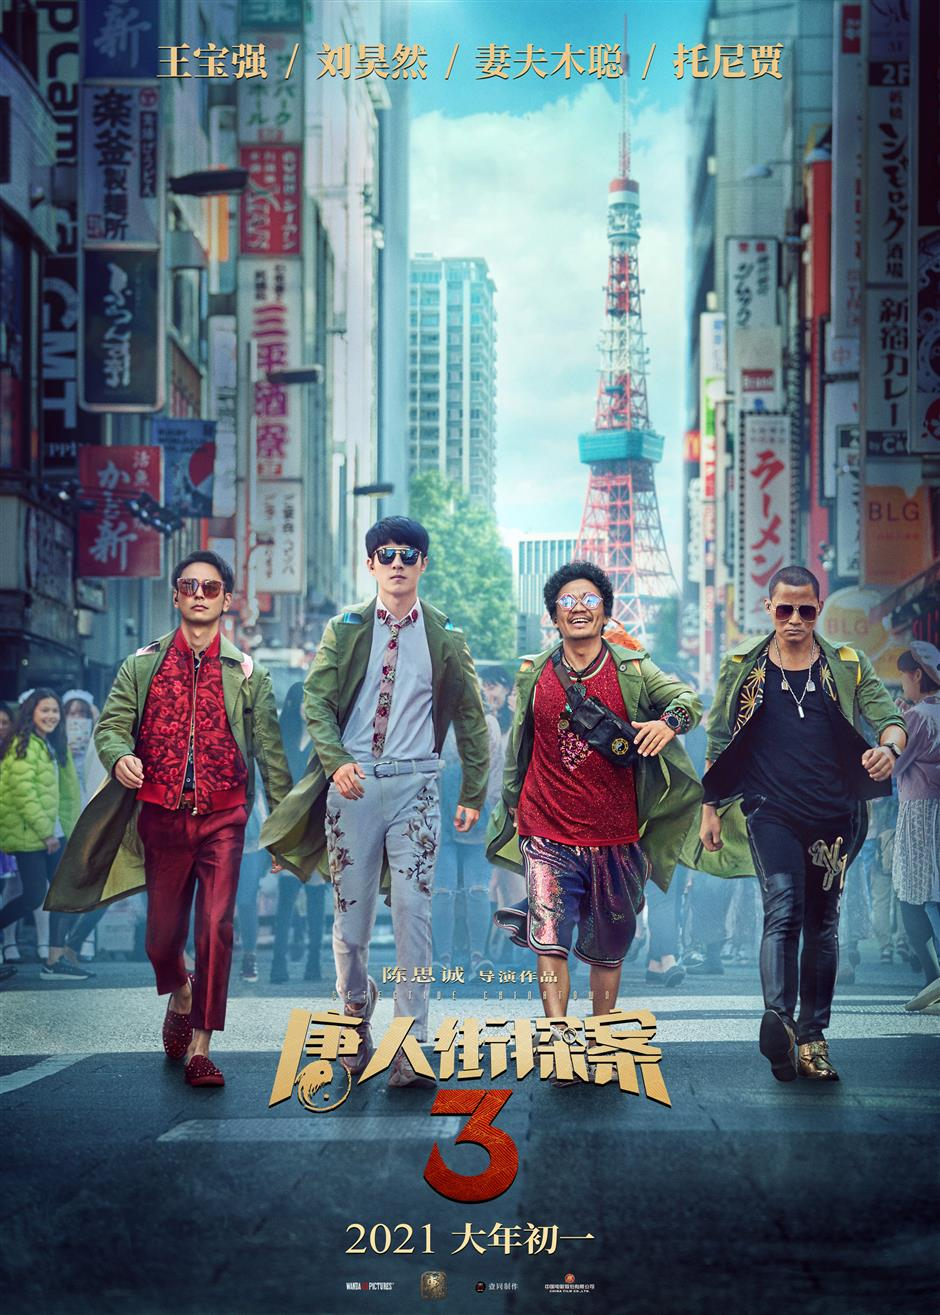 China film market a marked global triumph